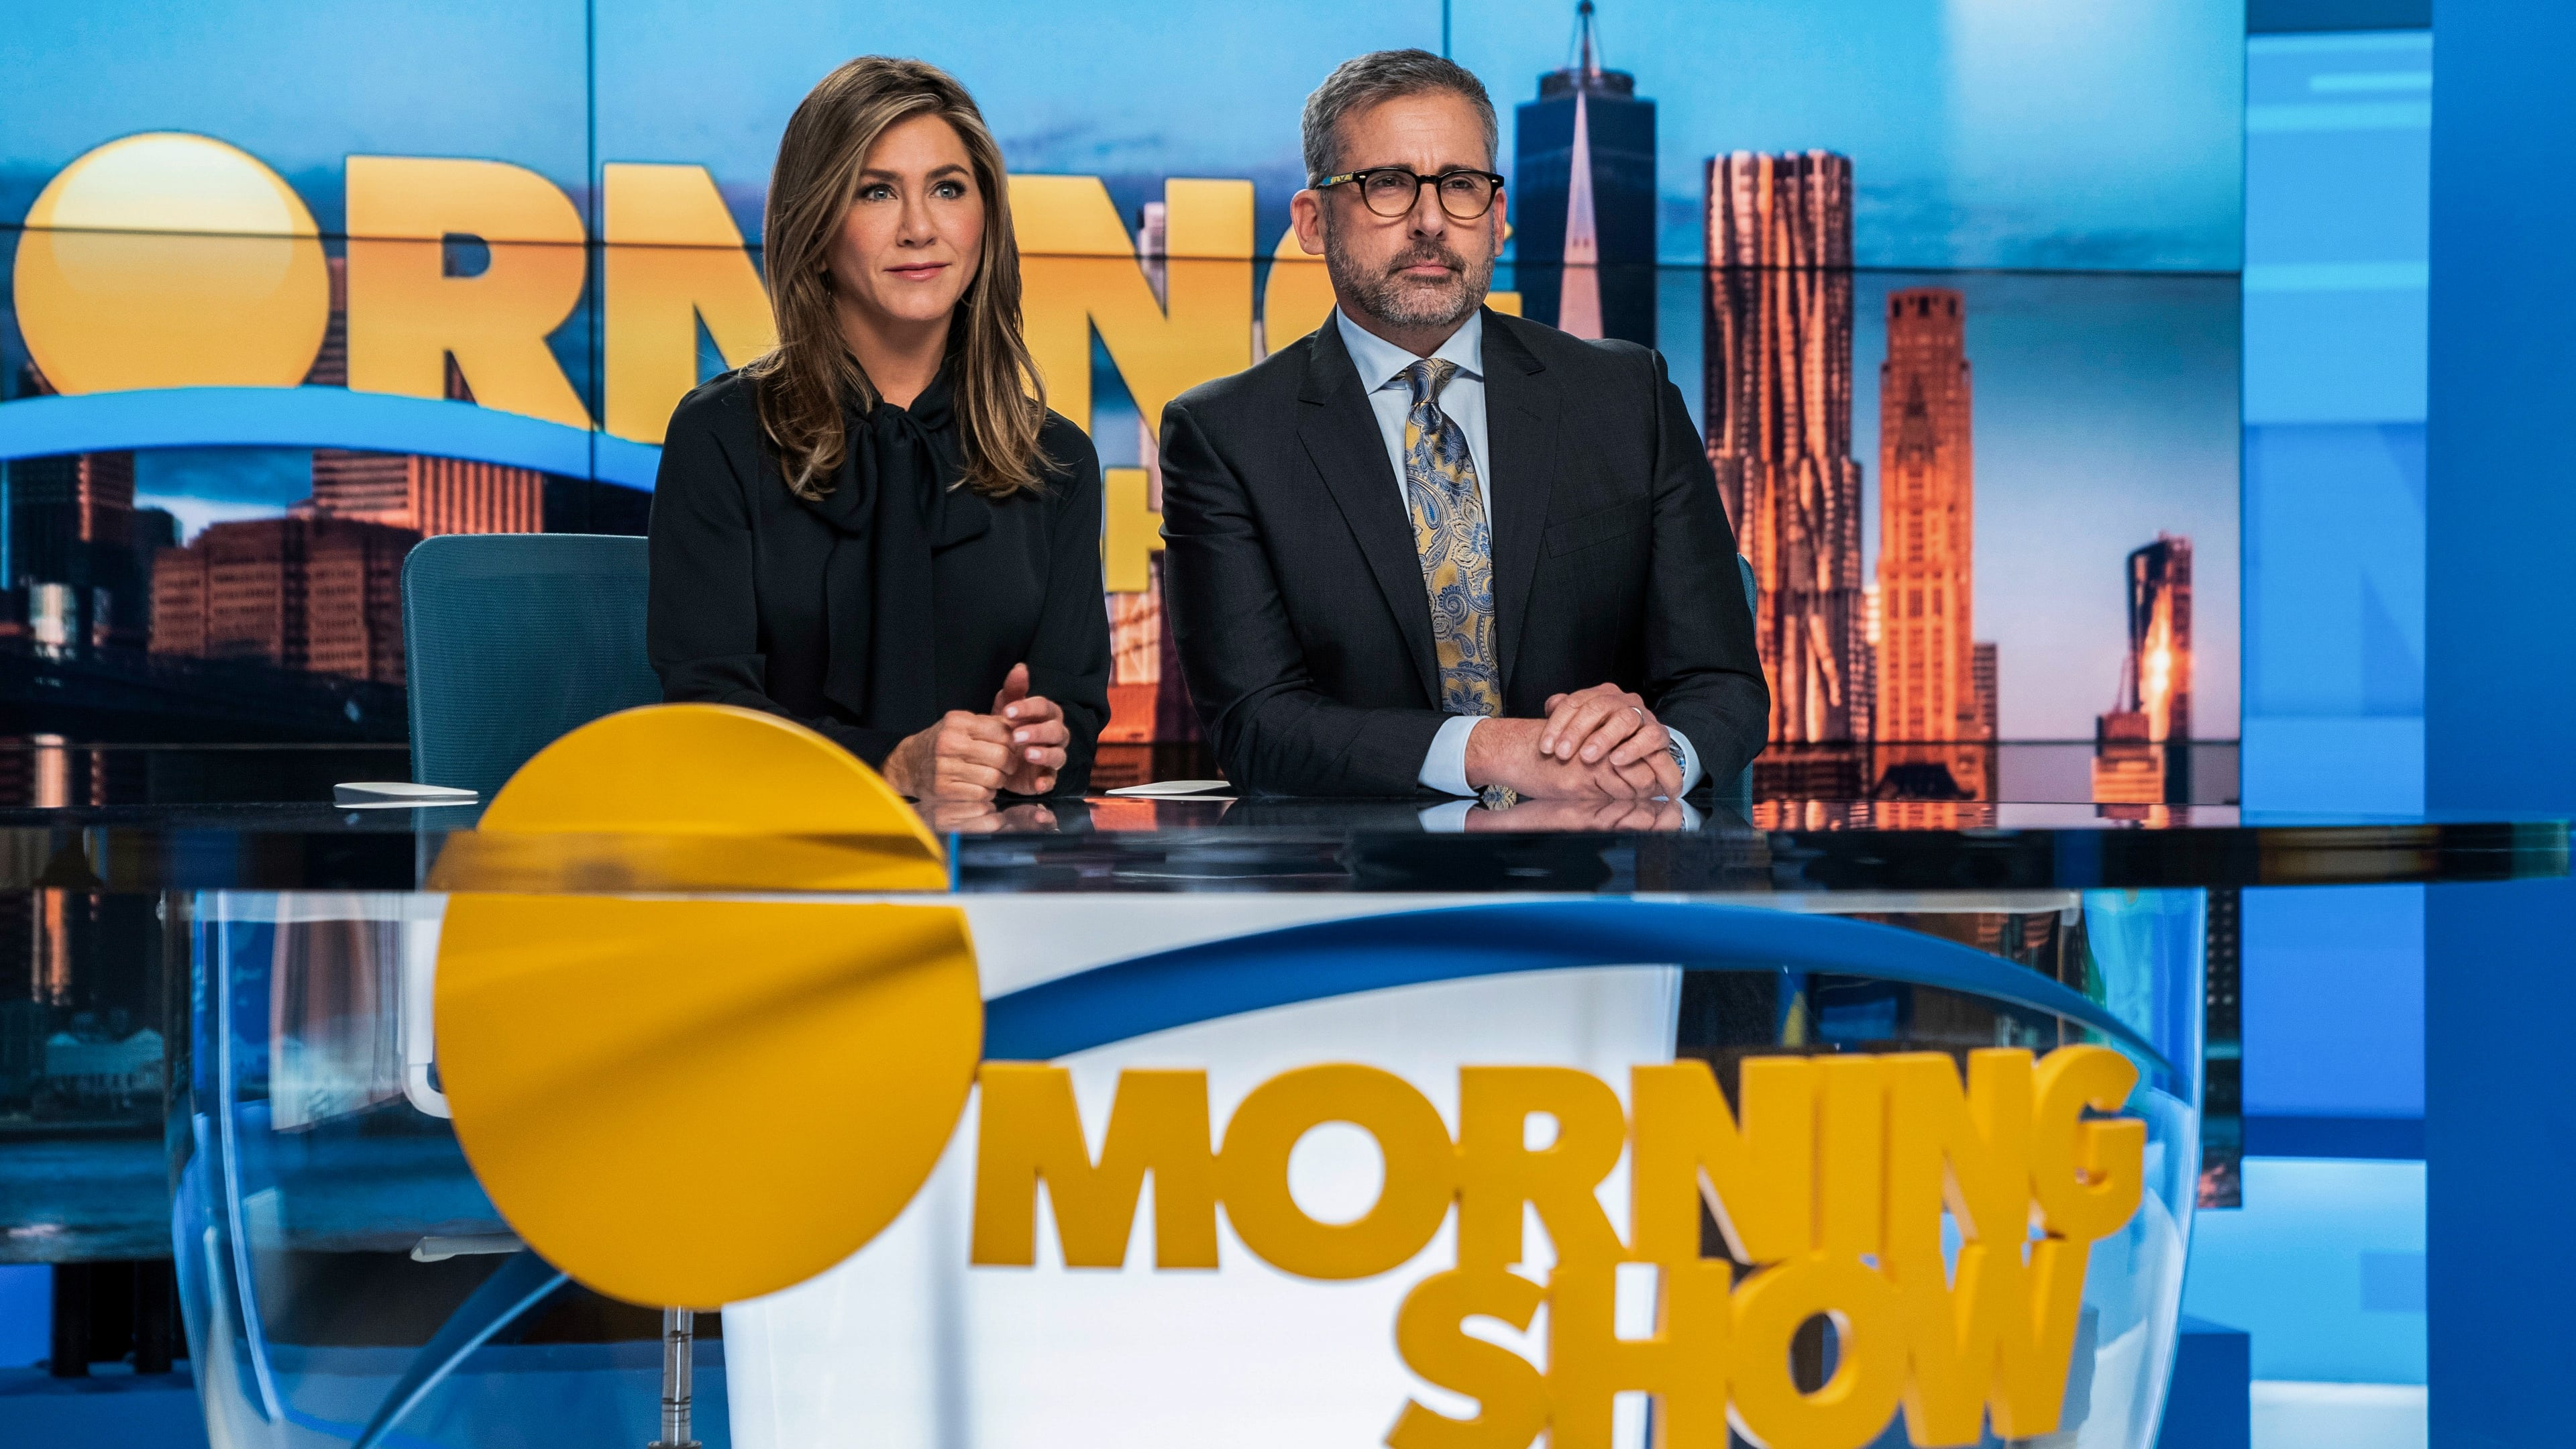 The Morning Show - Season 1 Episode 1 : In the Dark Night of the Soul It's Always 3:30 in the Morning